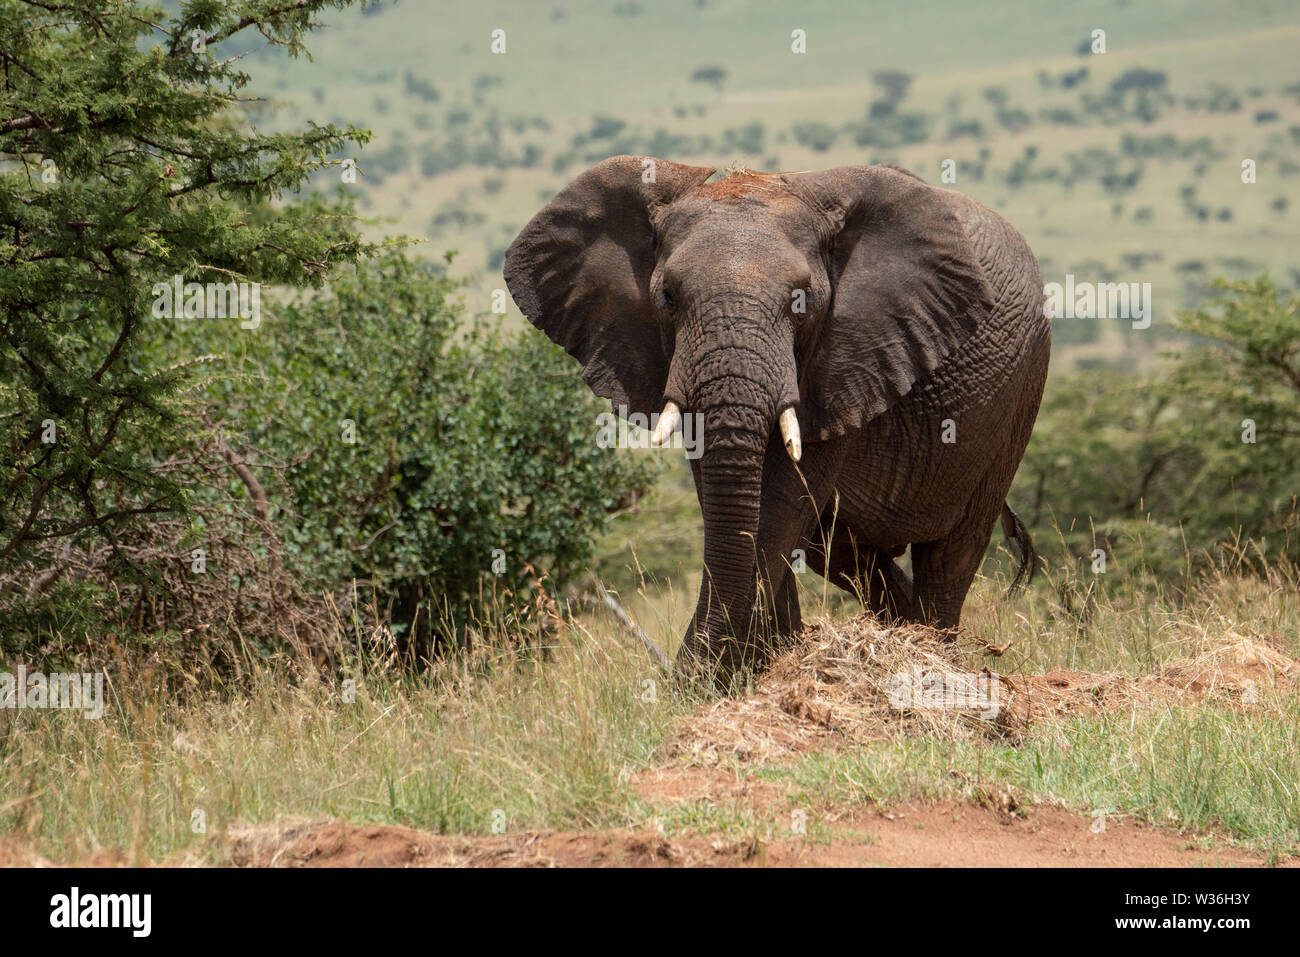 African elephant among bushes stares at camera - Stock Image